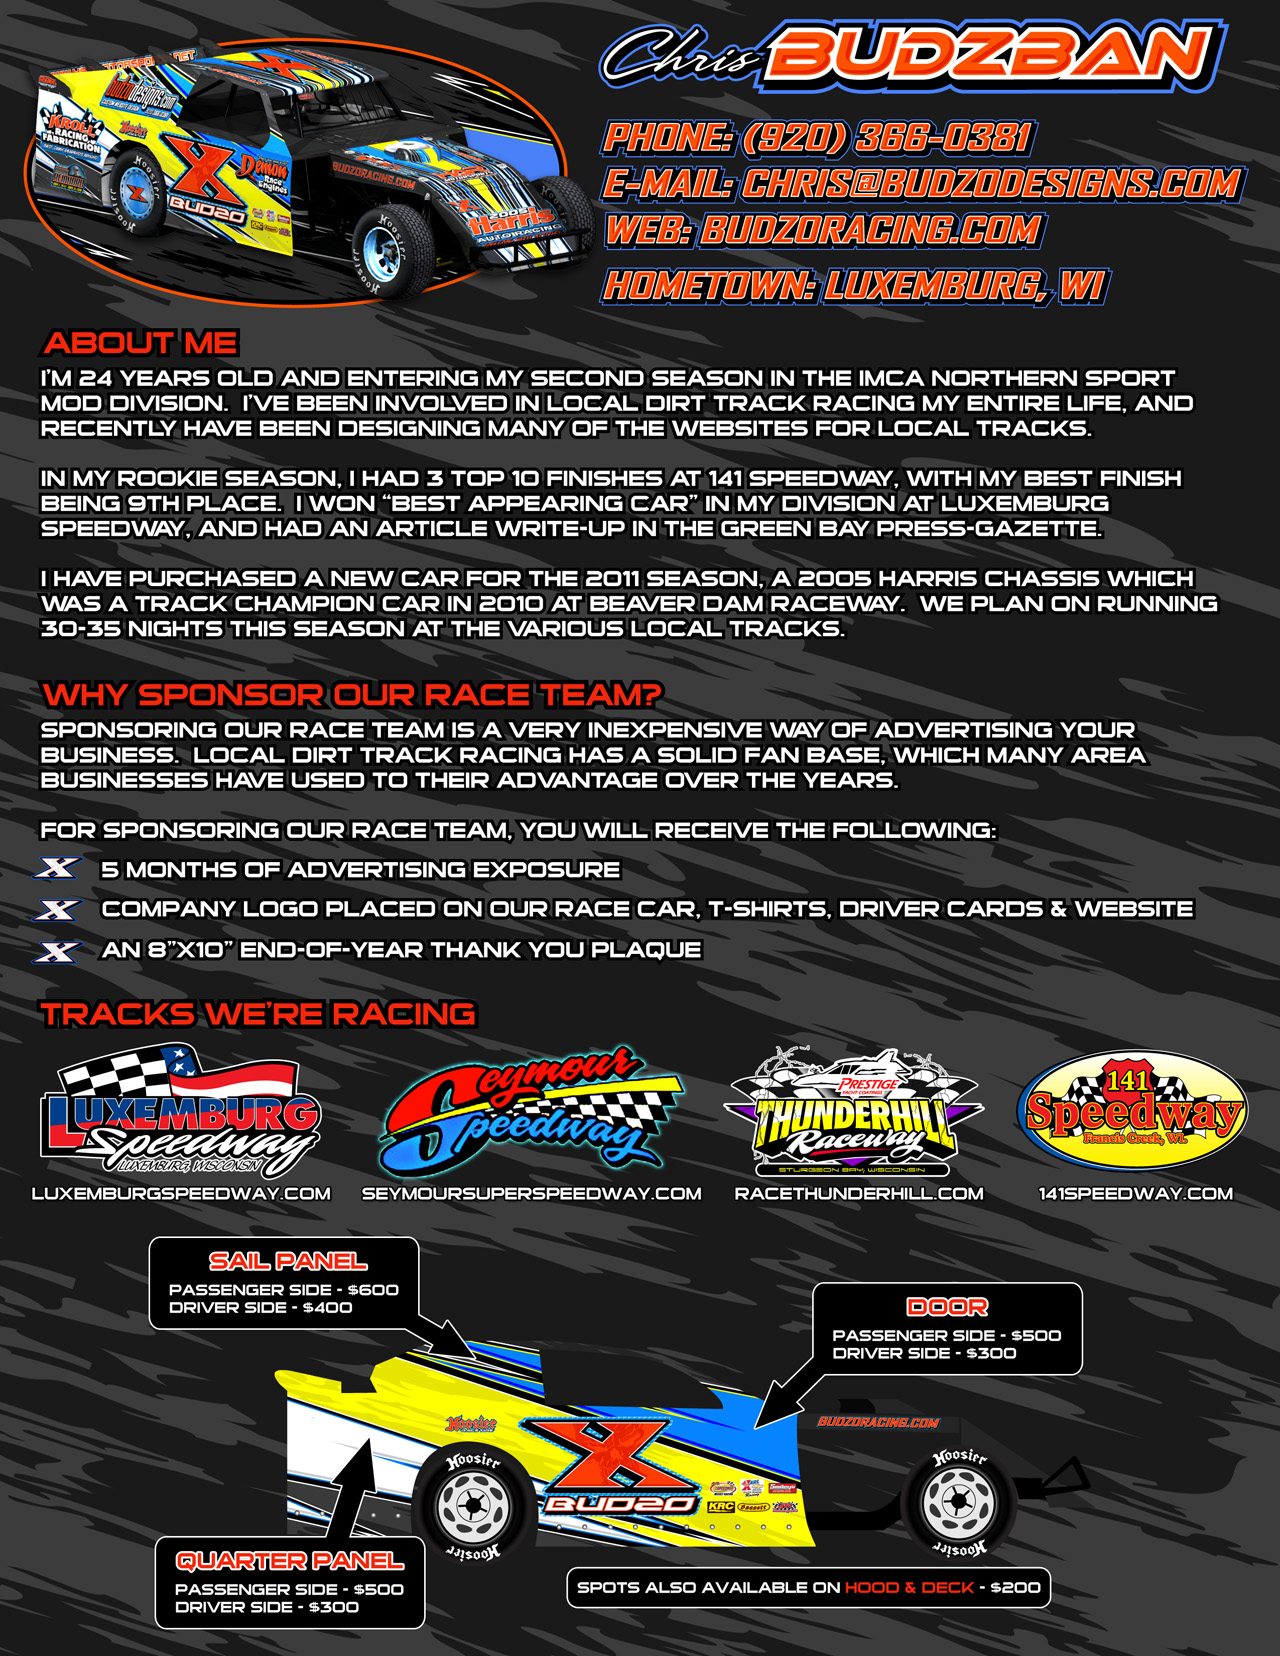 Free Racing Sponsorship Proposal Template. 40+ Sponsorship Letter ...